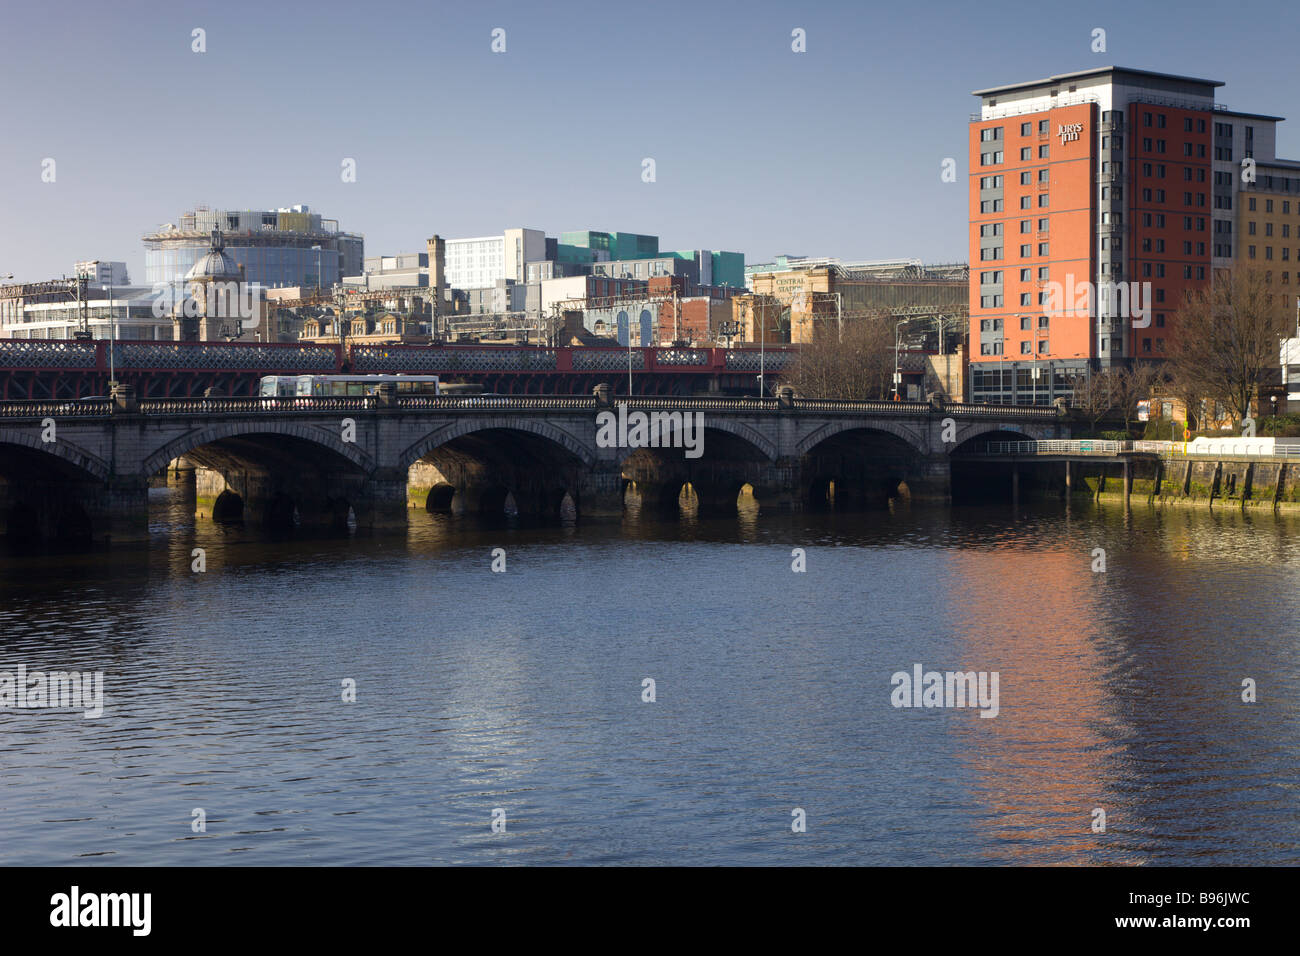 Glasgow Bridge from south side of River Clyde with Central Station, railway bridge and financial district behind. - Stock Image